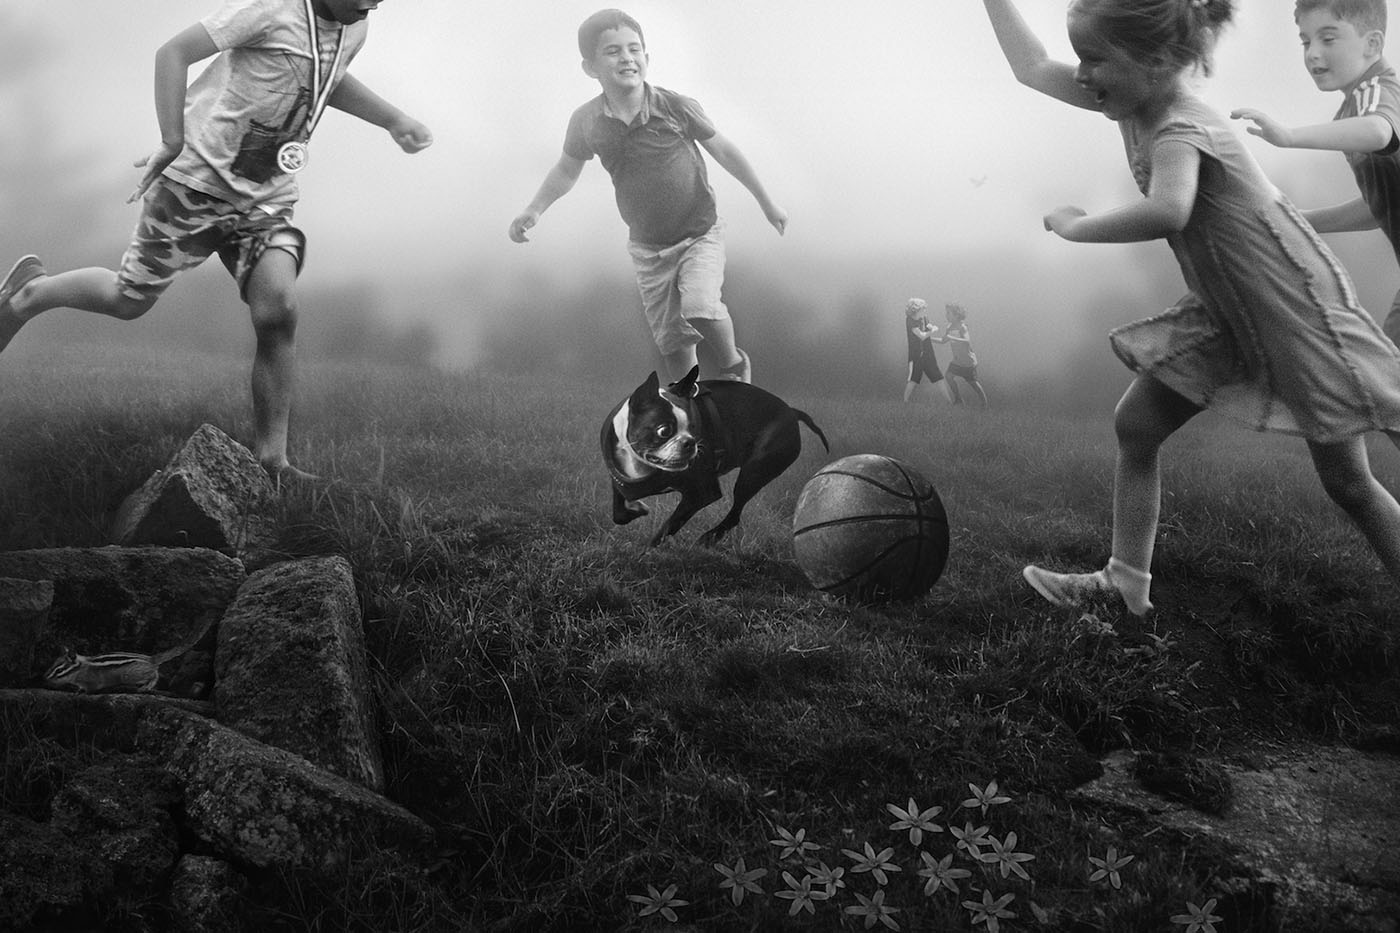 Francisco_Diaz_Deb_Young_USA_New_Zealand_The_Playground_Series_05.jpg